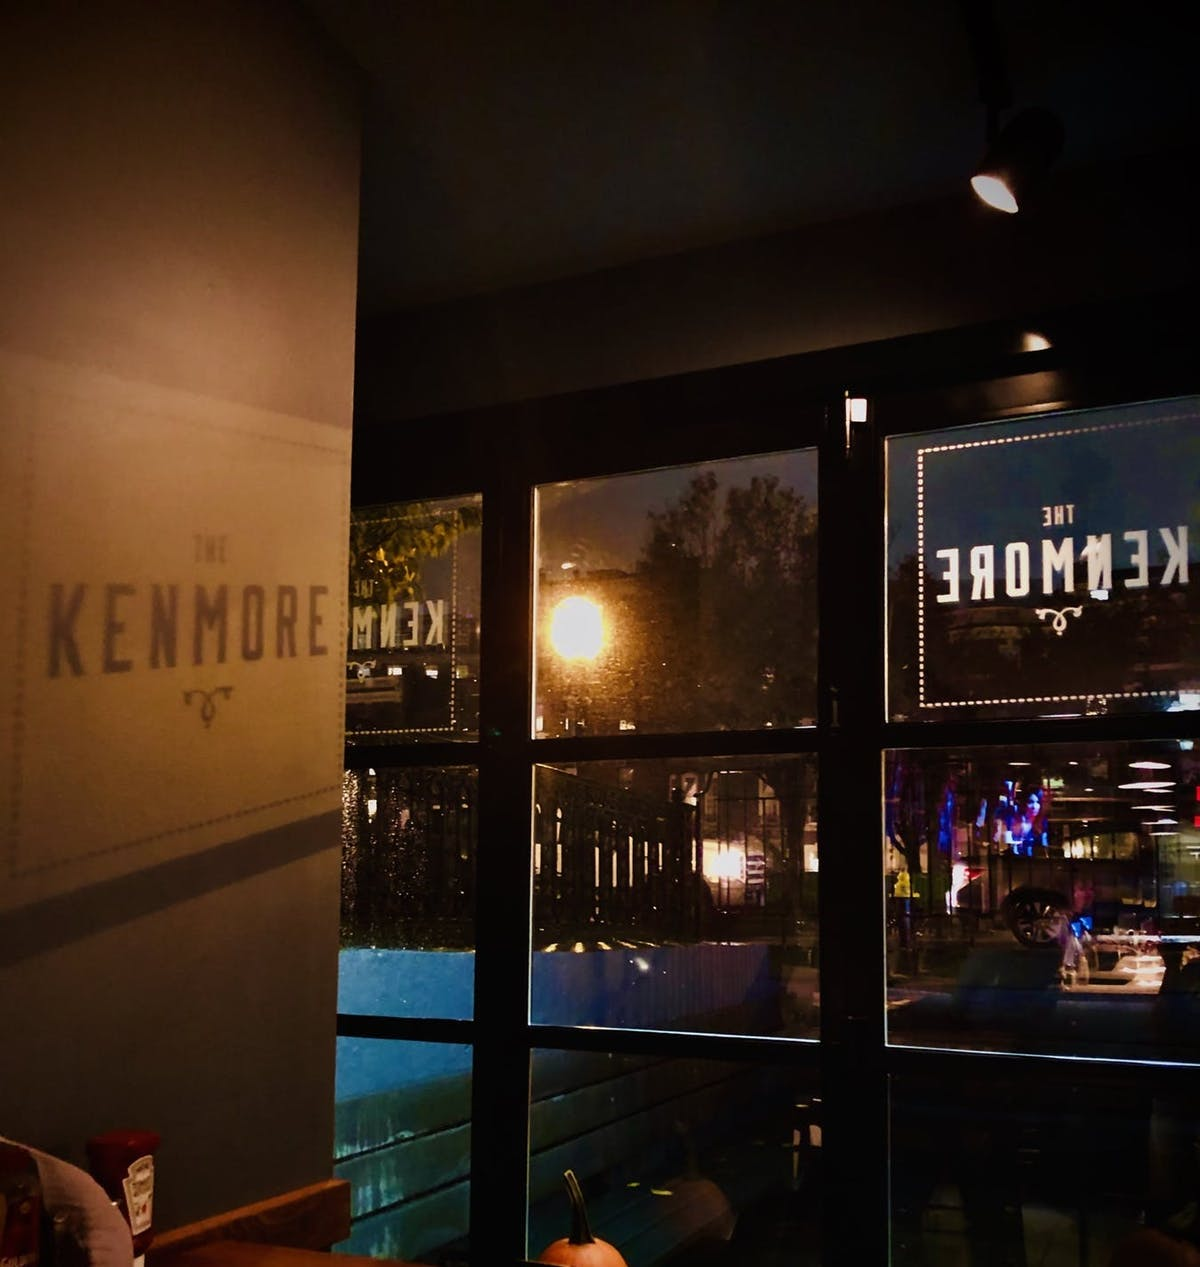 the kenmore logo on a window